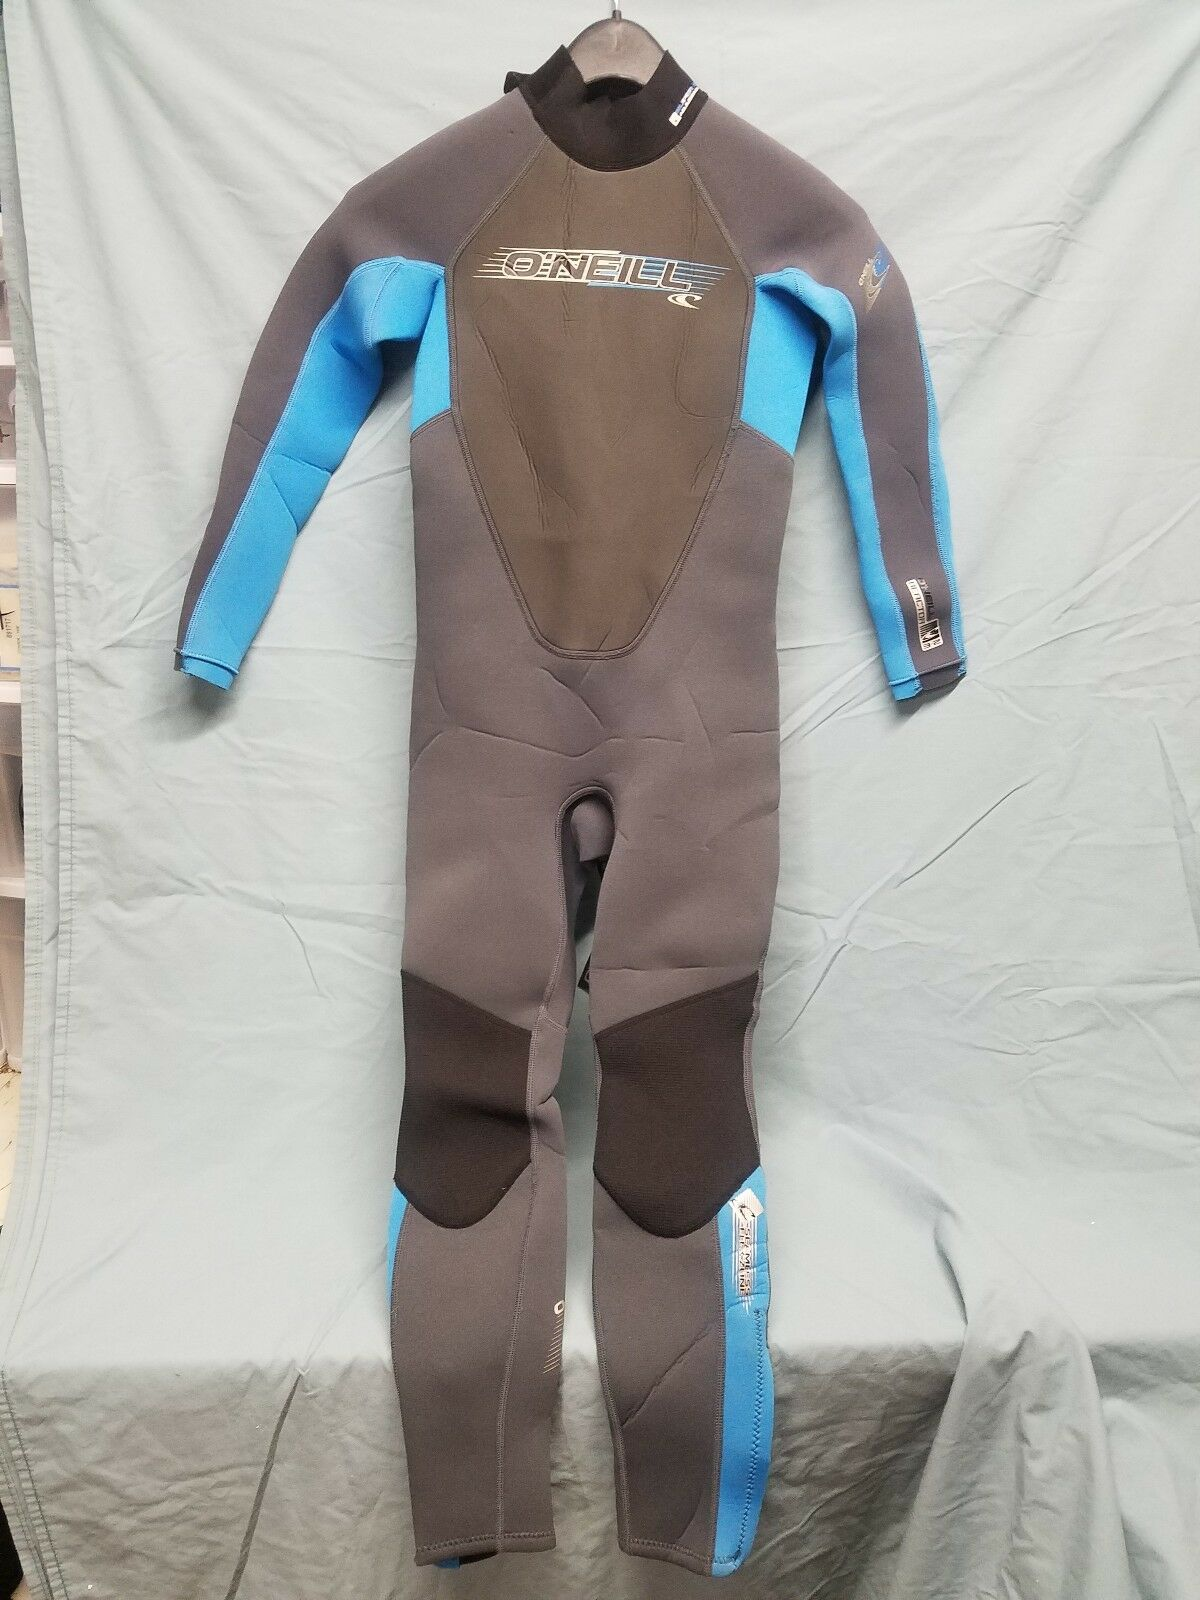 O'Neill Reactor 3 2mm Full Wetsuit Graphite Bright bluee Youth Sz 10  FA2 1330